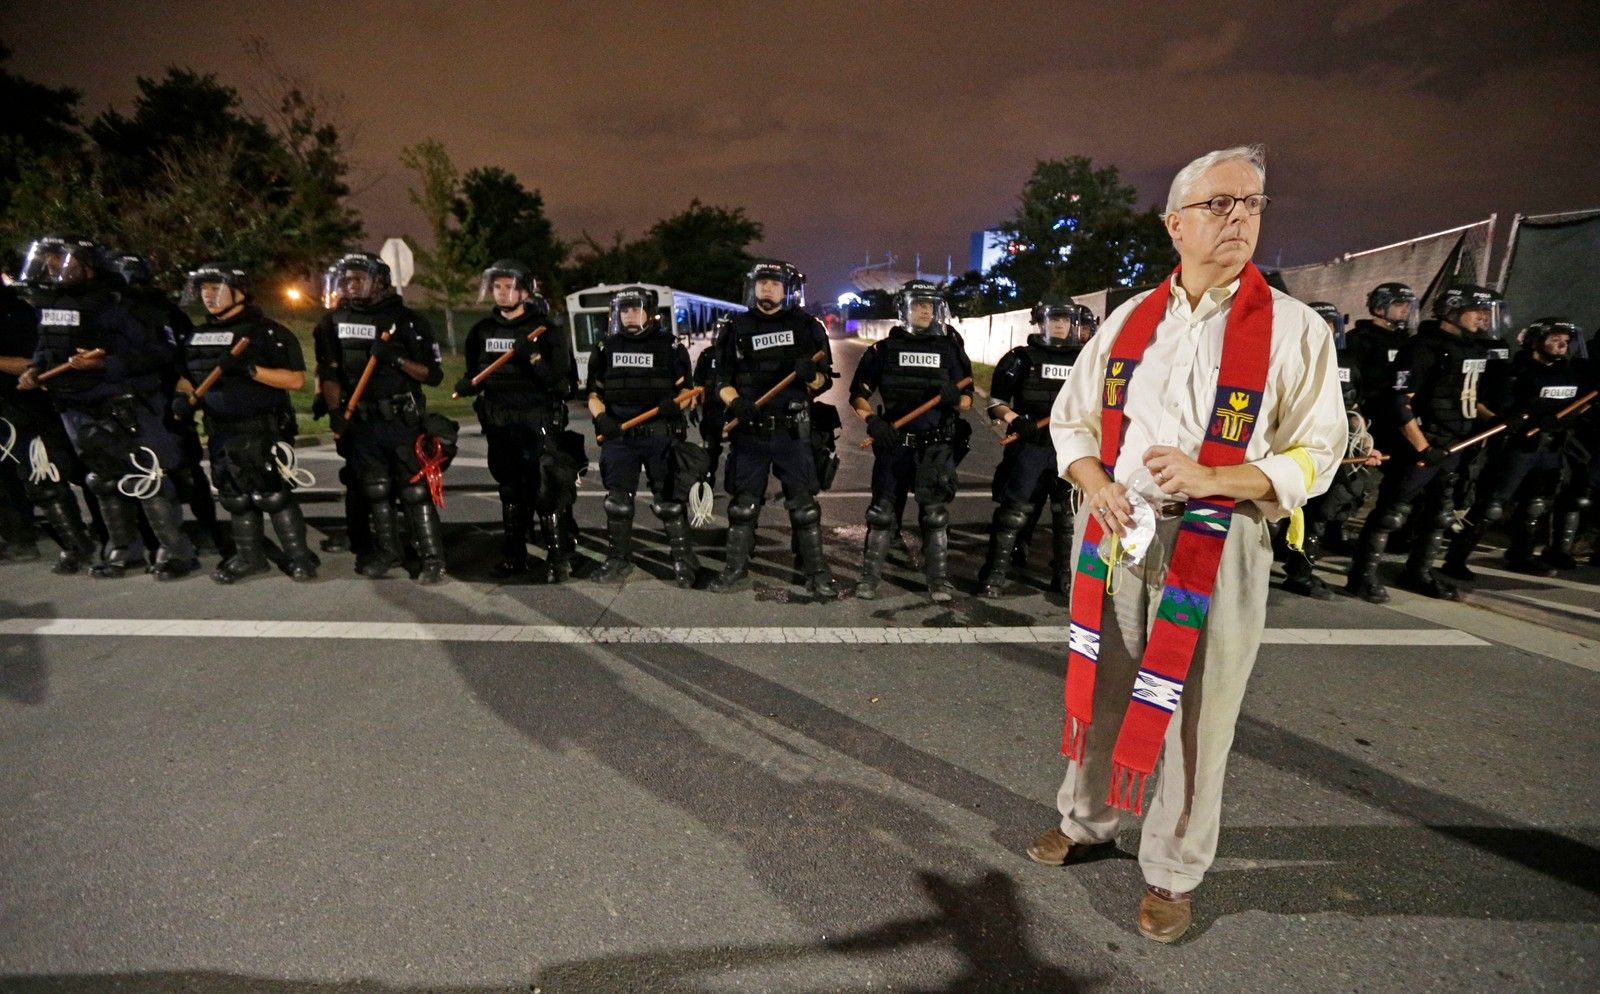 Charlotte Police Fatal Shooting A member of the clergy stands in front of a line of police officers in Charlotte, N.C. Thursday, Sept. 22, 2016. blocking the access road to I-277 on the third night of protests following Tuesday's fatal police shooting of Keith Lamont Scott. (AP Photo/Chuck Burton)